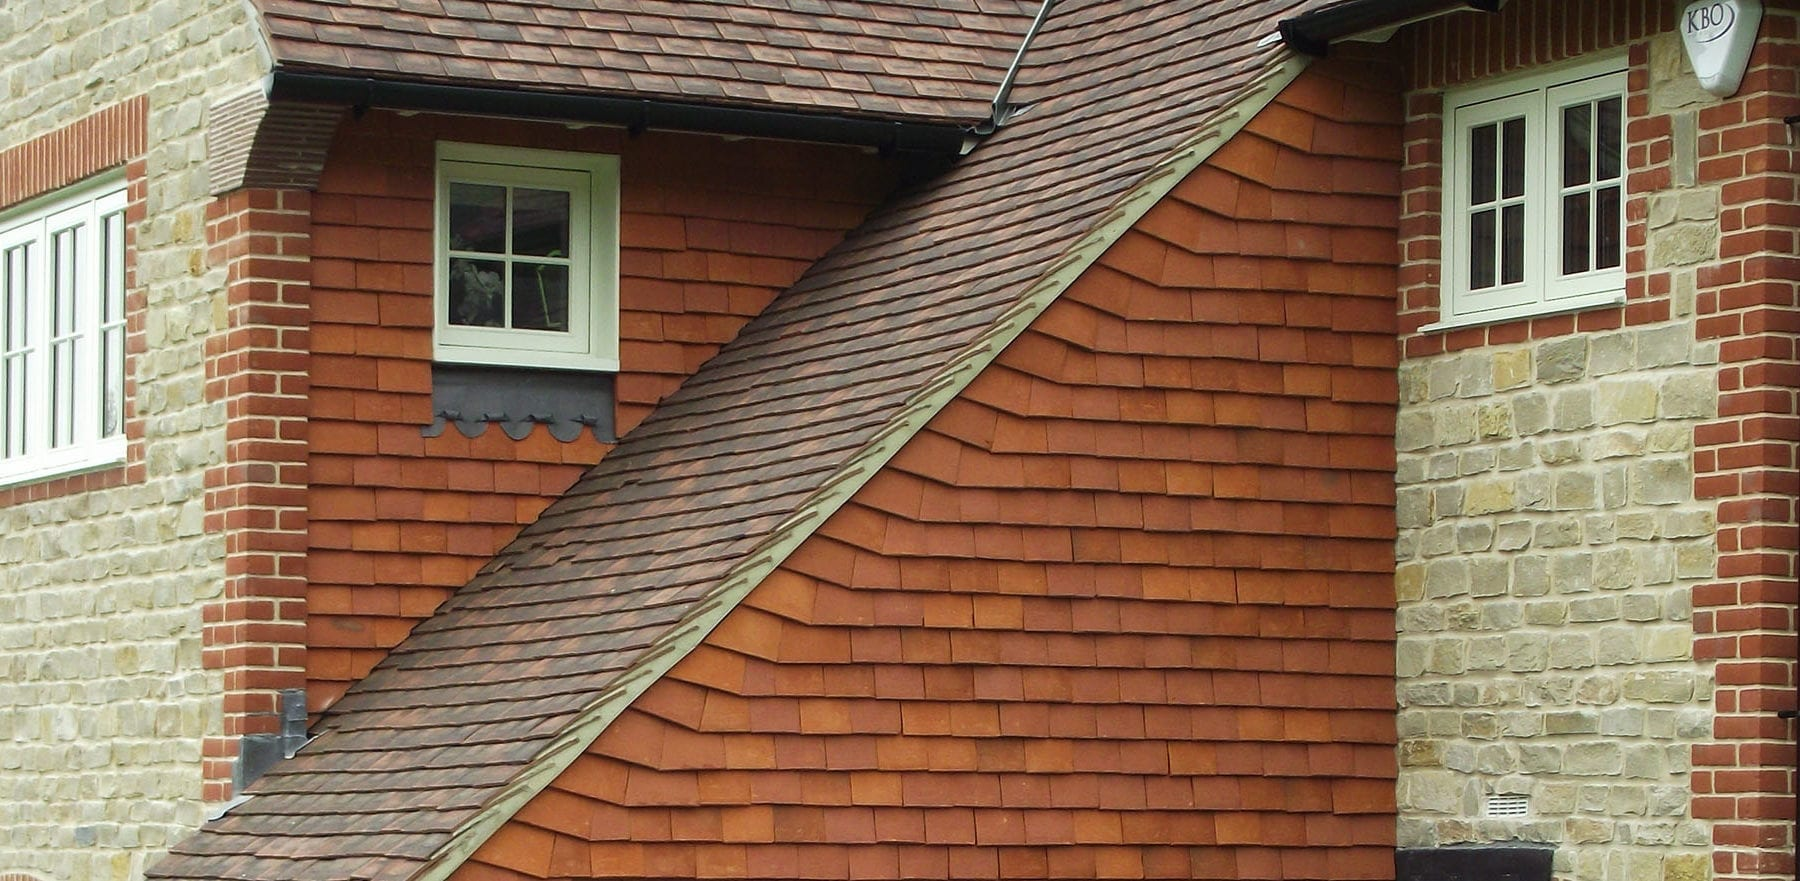 Lifestiles - Handcrafted Orange Clay Roof Tiles - Seaford College, England 6